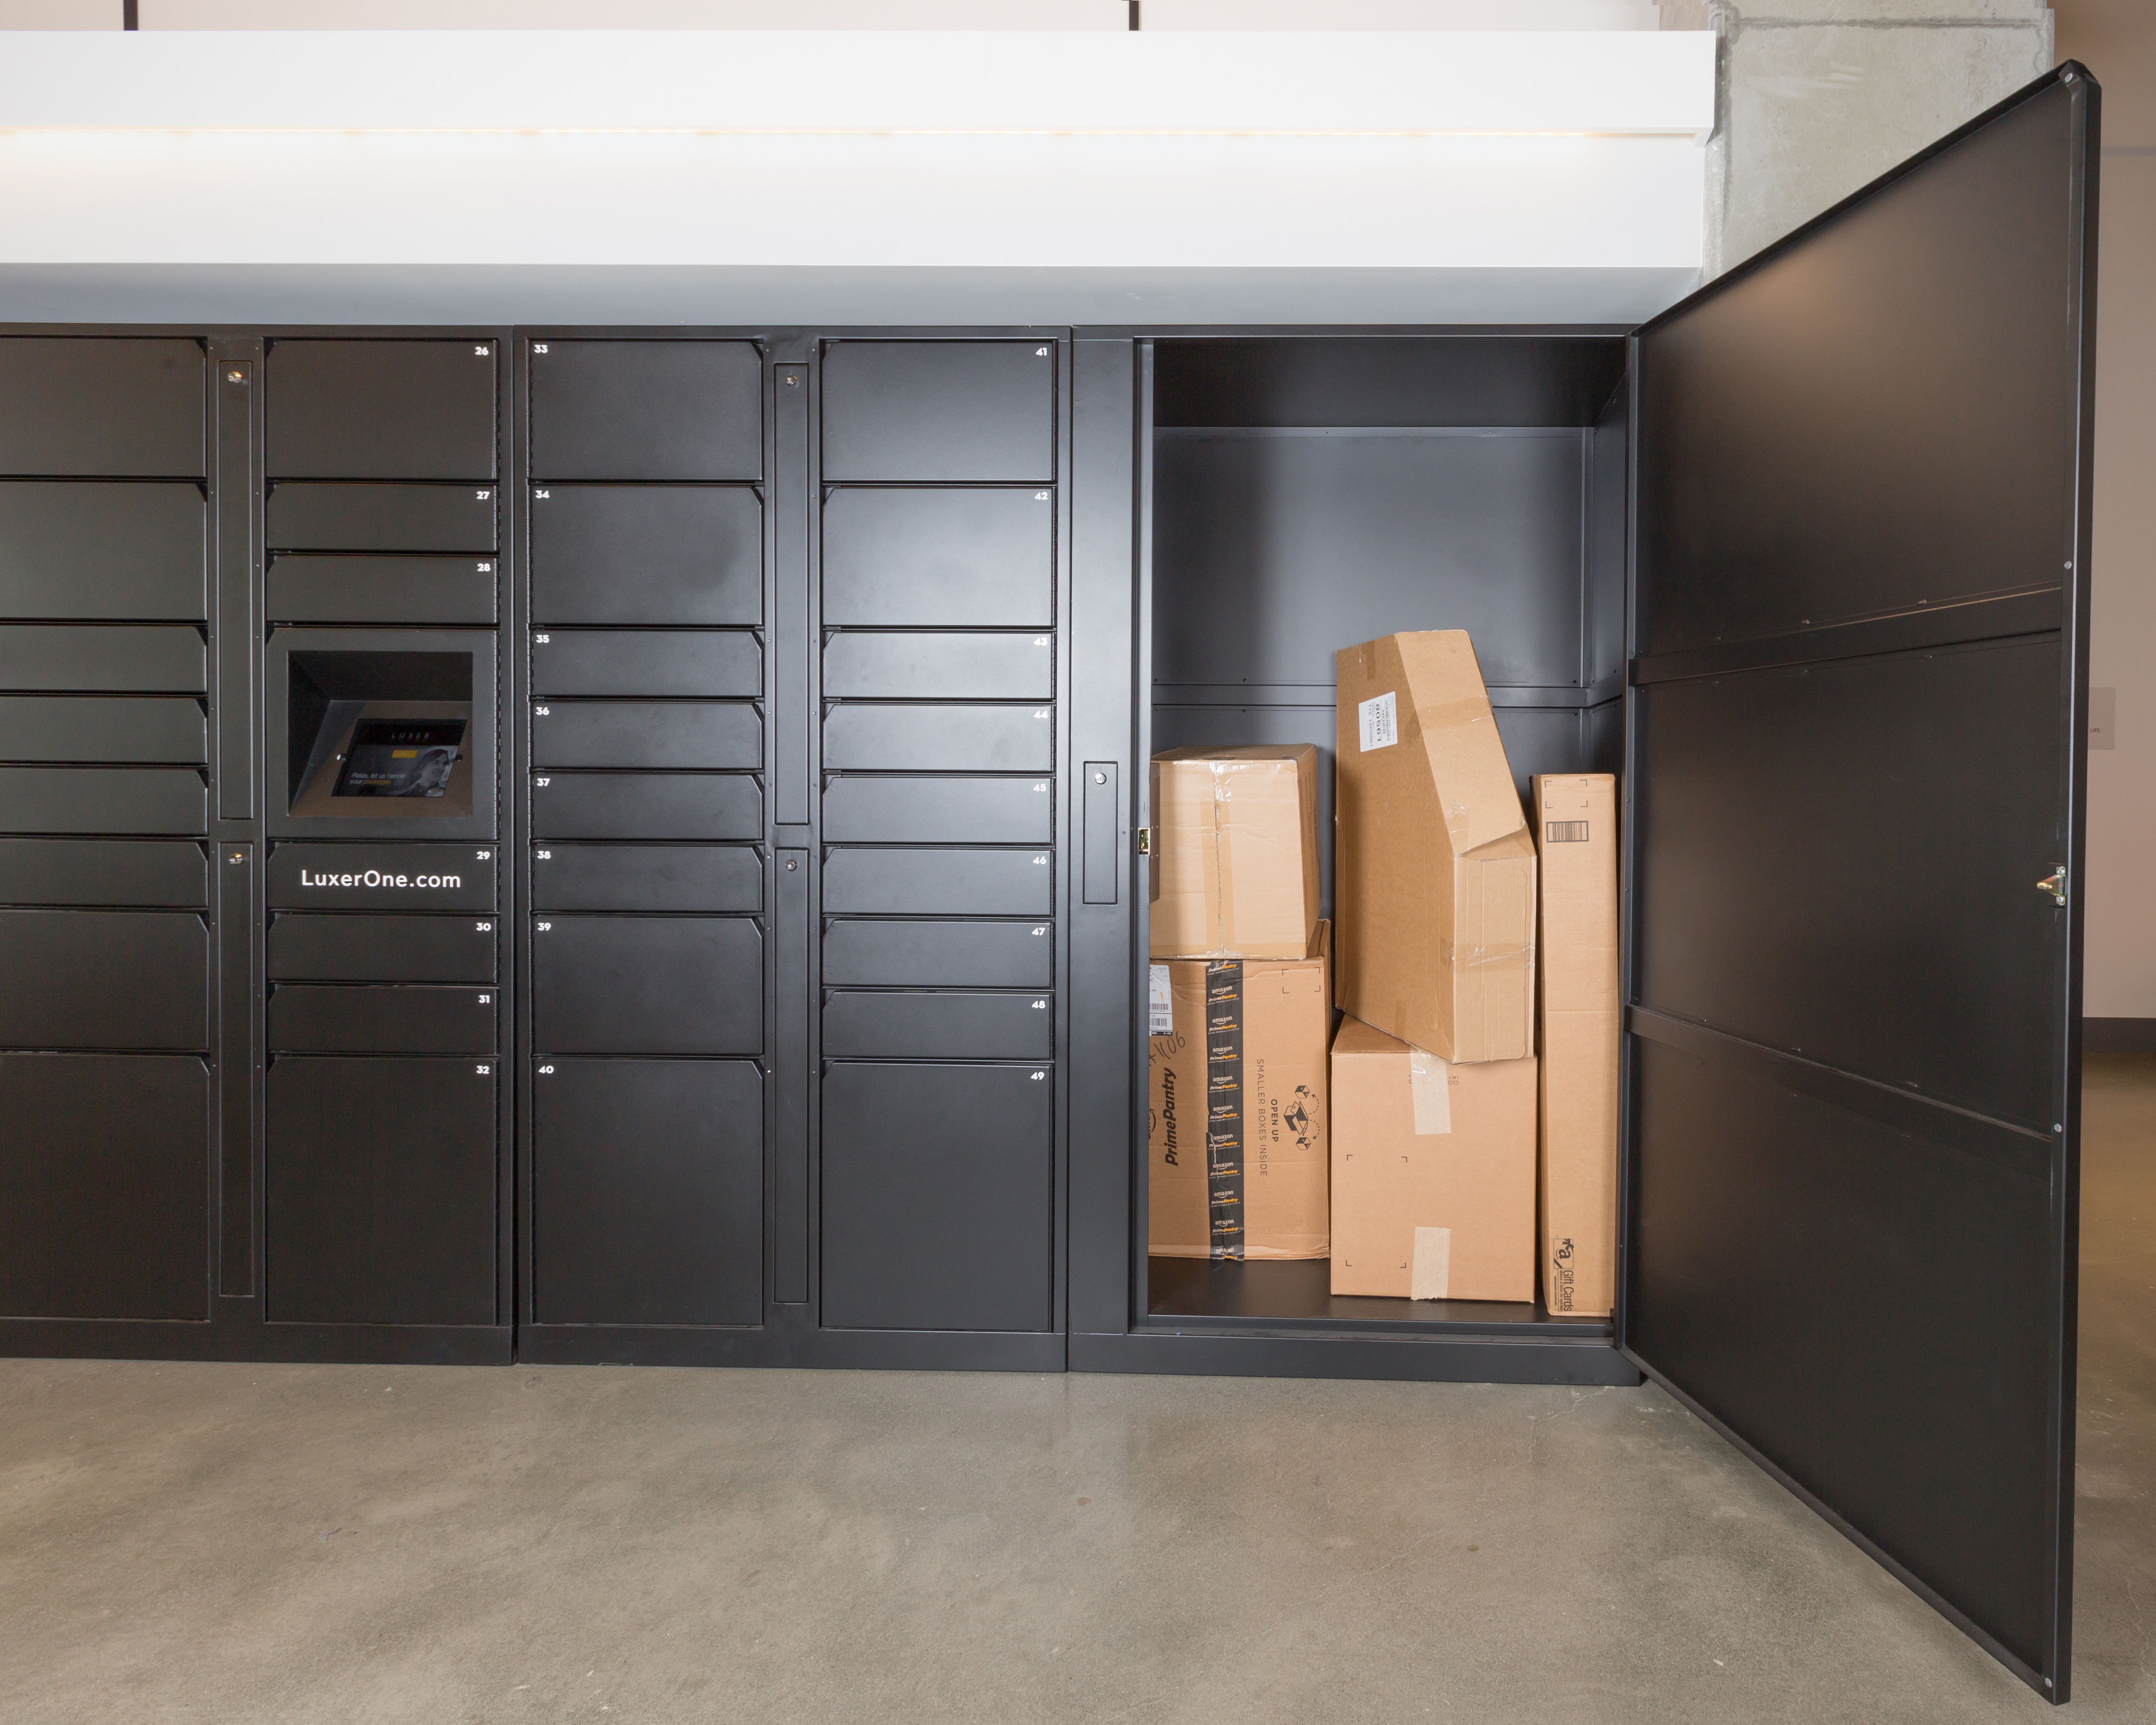 Five extra-large packages inside an open Luxer Oversized Locker.